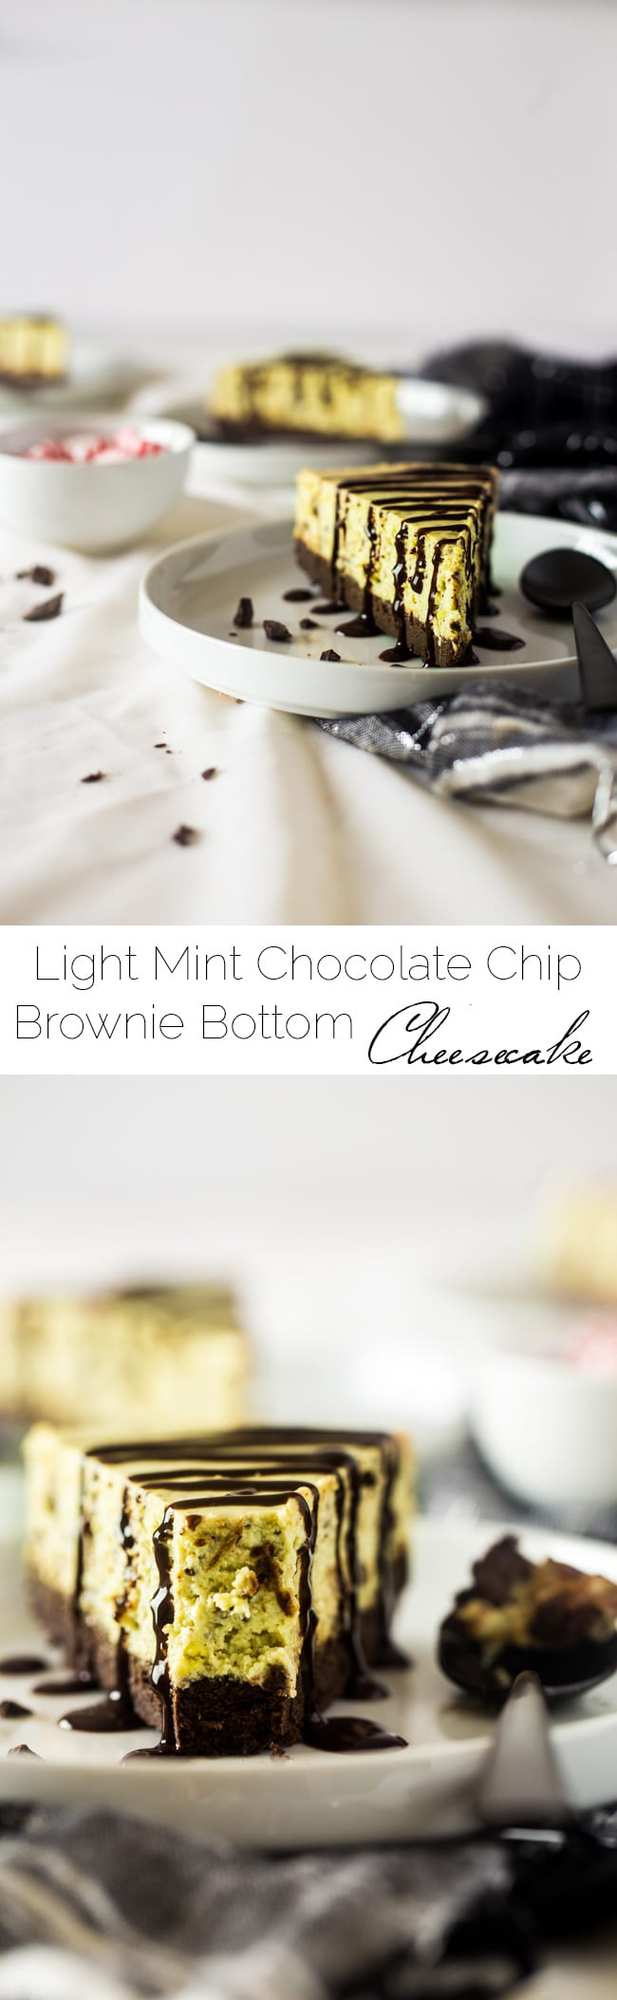 Gluten Free Brownie Bottomed Mint Chocolate Avocado Cheesecake - This creamy gluten free cheesecake uses avocado to make it naturally green. It has a rich brownie bottom crust and you'll never know it's secretly healthy! Perfect for Christmas!   Foodfaithfitness.com   @FoodFaithFit